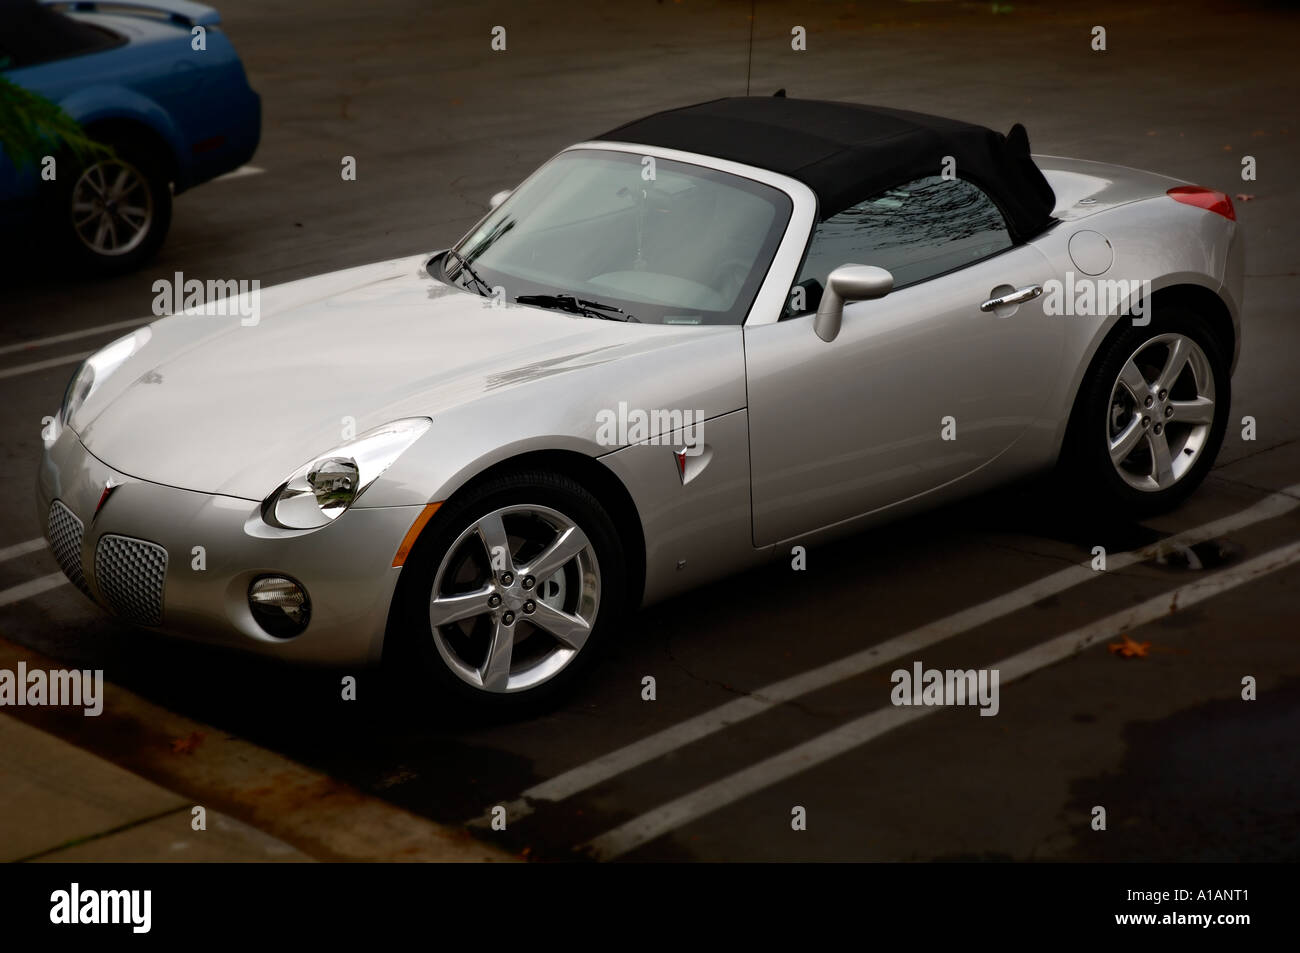 Brand New 2006 Pontiac Solstice The Solstice Is The Only American Stock Photo Alamy